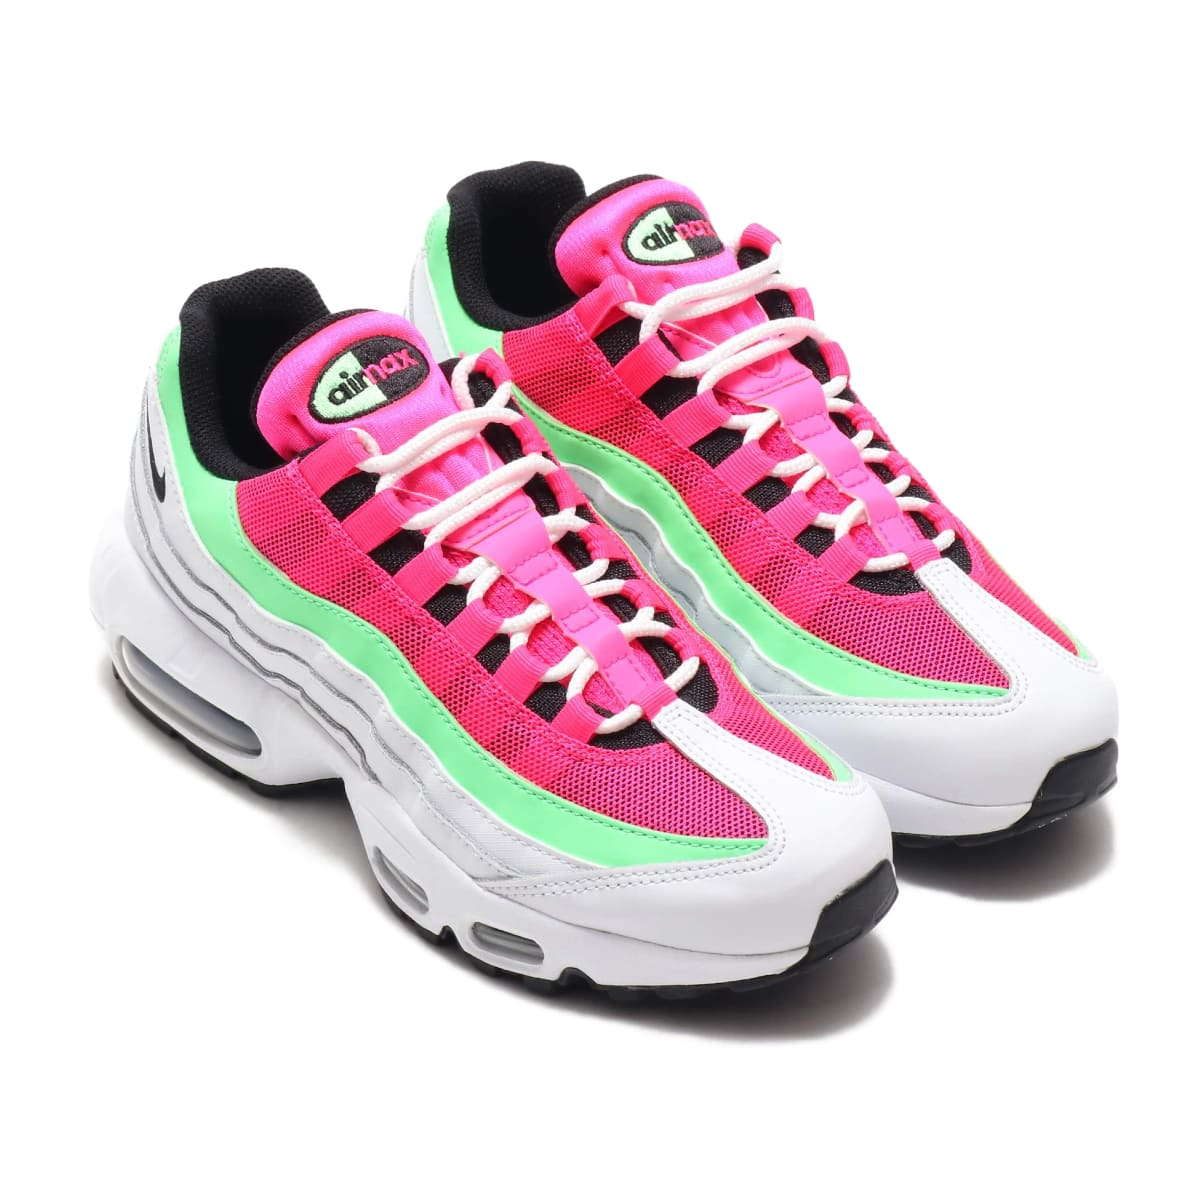 NIKE WMNS AIR MAX 95 WHITE/BLACK-HYPER PINK-ILLUSION GREEN 20SU-I_photo_large